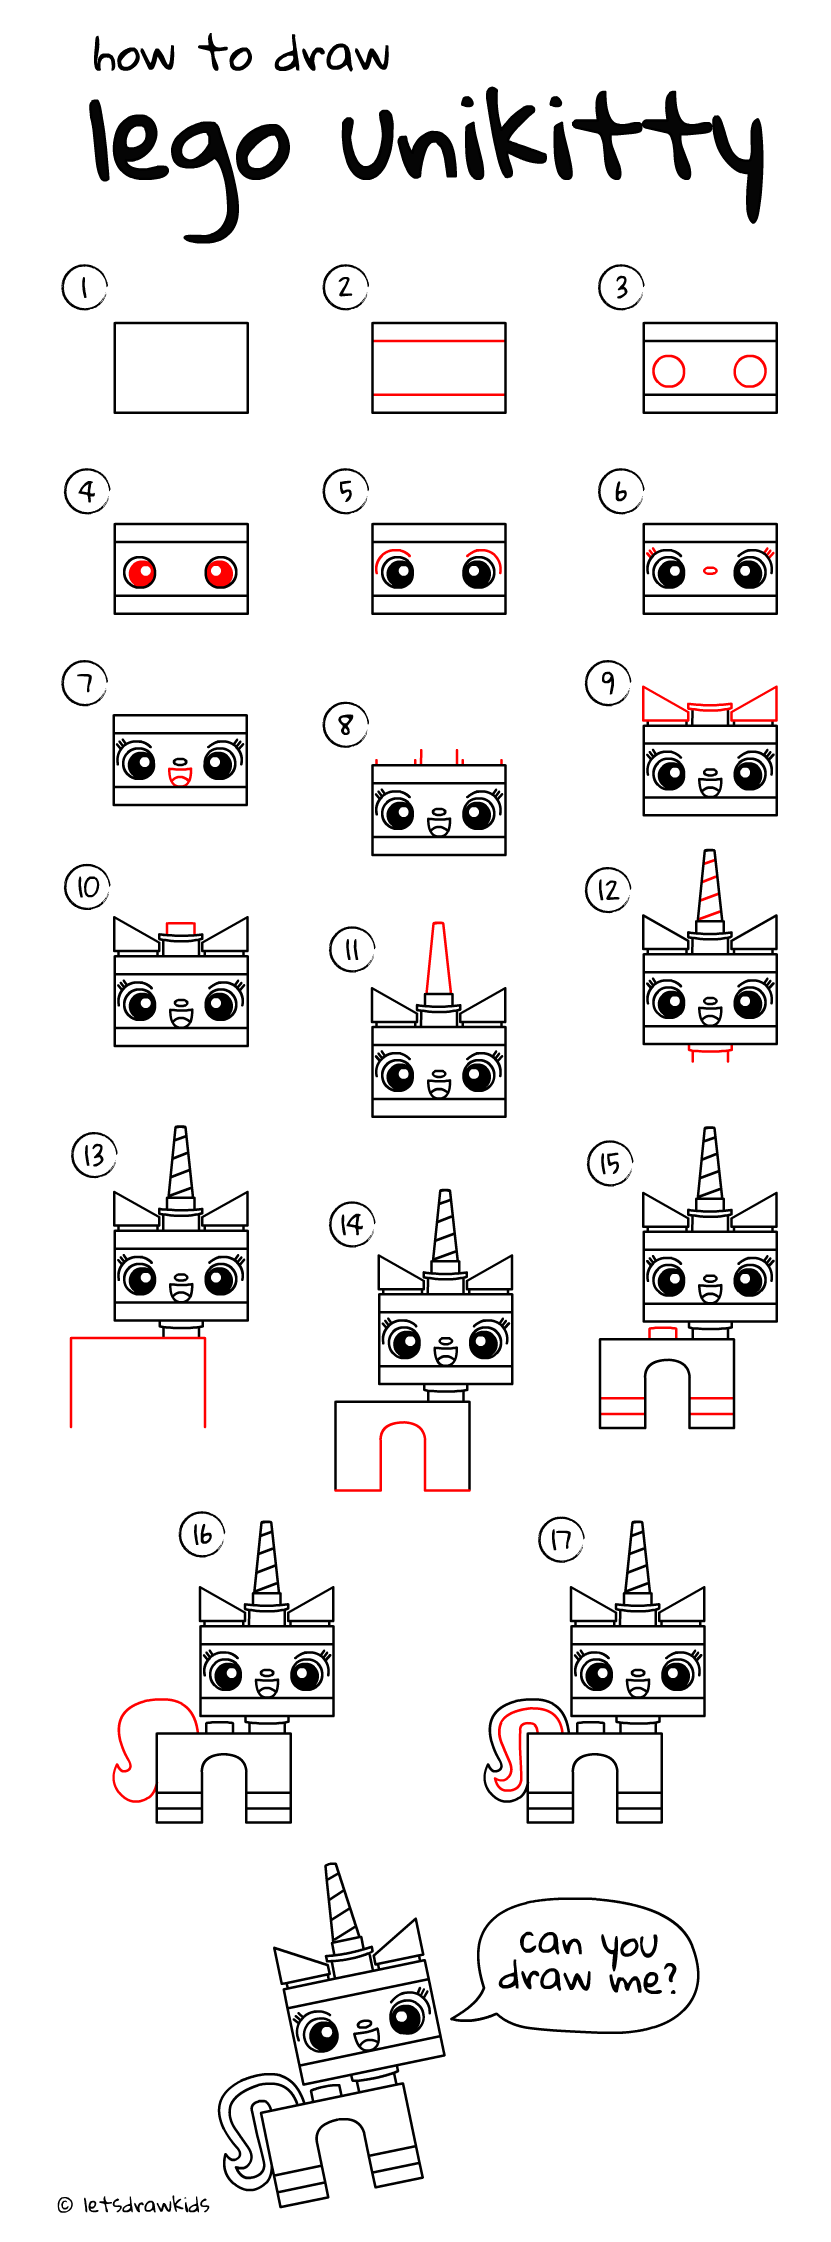 How To Draw LEGO UNIKITTY Easy Drawing Step By Perfect For Kids Lets Letsdrawkids